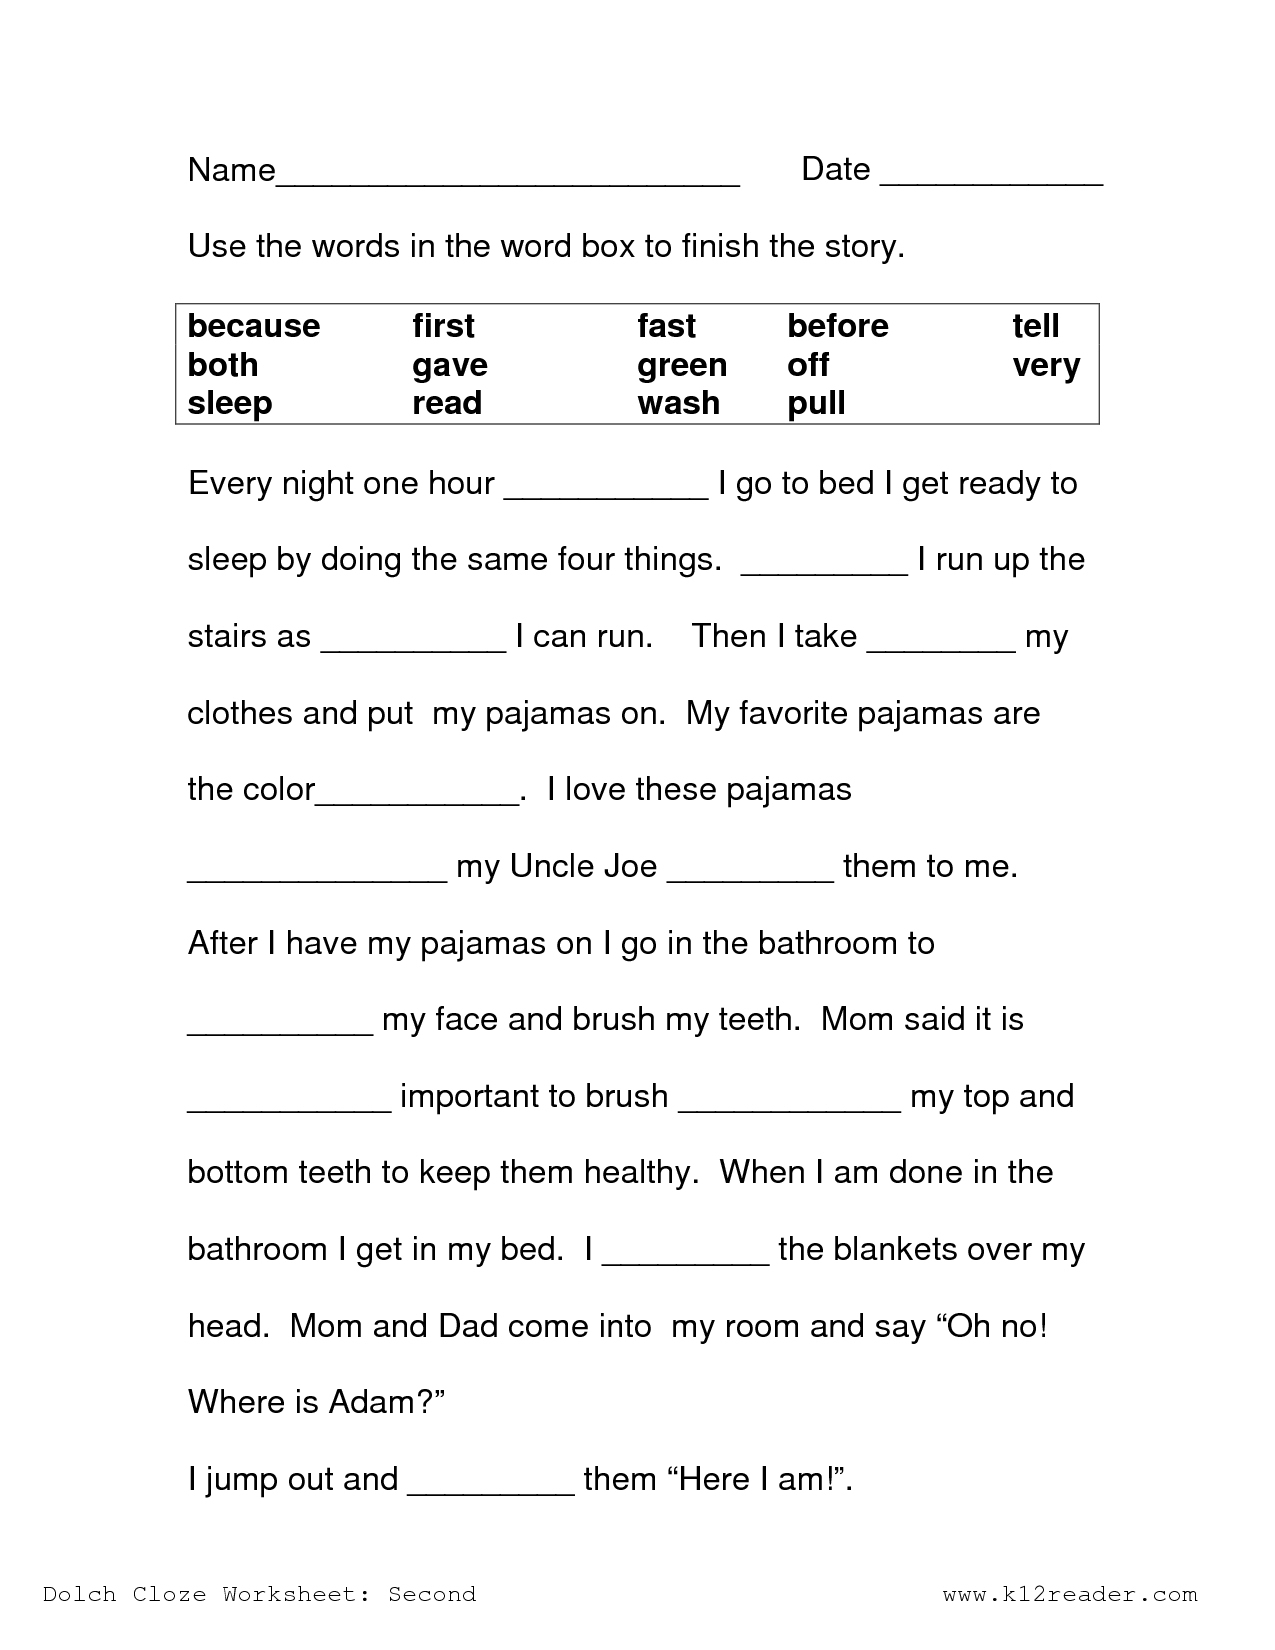 Math Worksheet: 2Nd Grade Science Worksheets Free Printable Easy | Free Printable Science Worksheets For 2Nd Grade